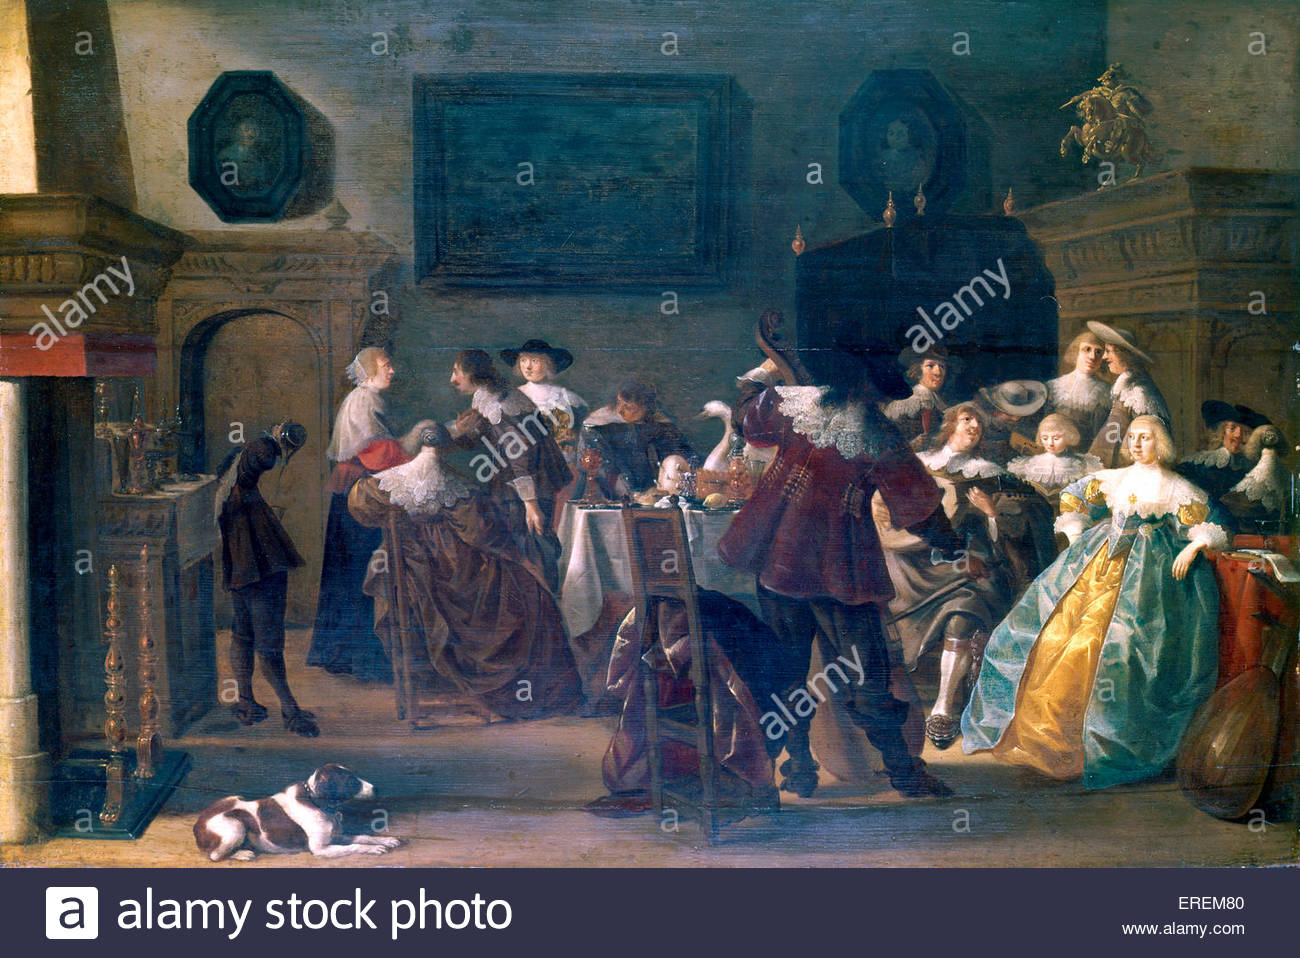 Cavaliers & Ladies by Anthoine Palamedes (also Antonie Palamedesz), Dutch painter (1601- 1673). - Stock Image